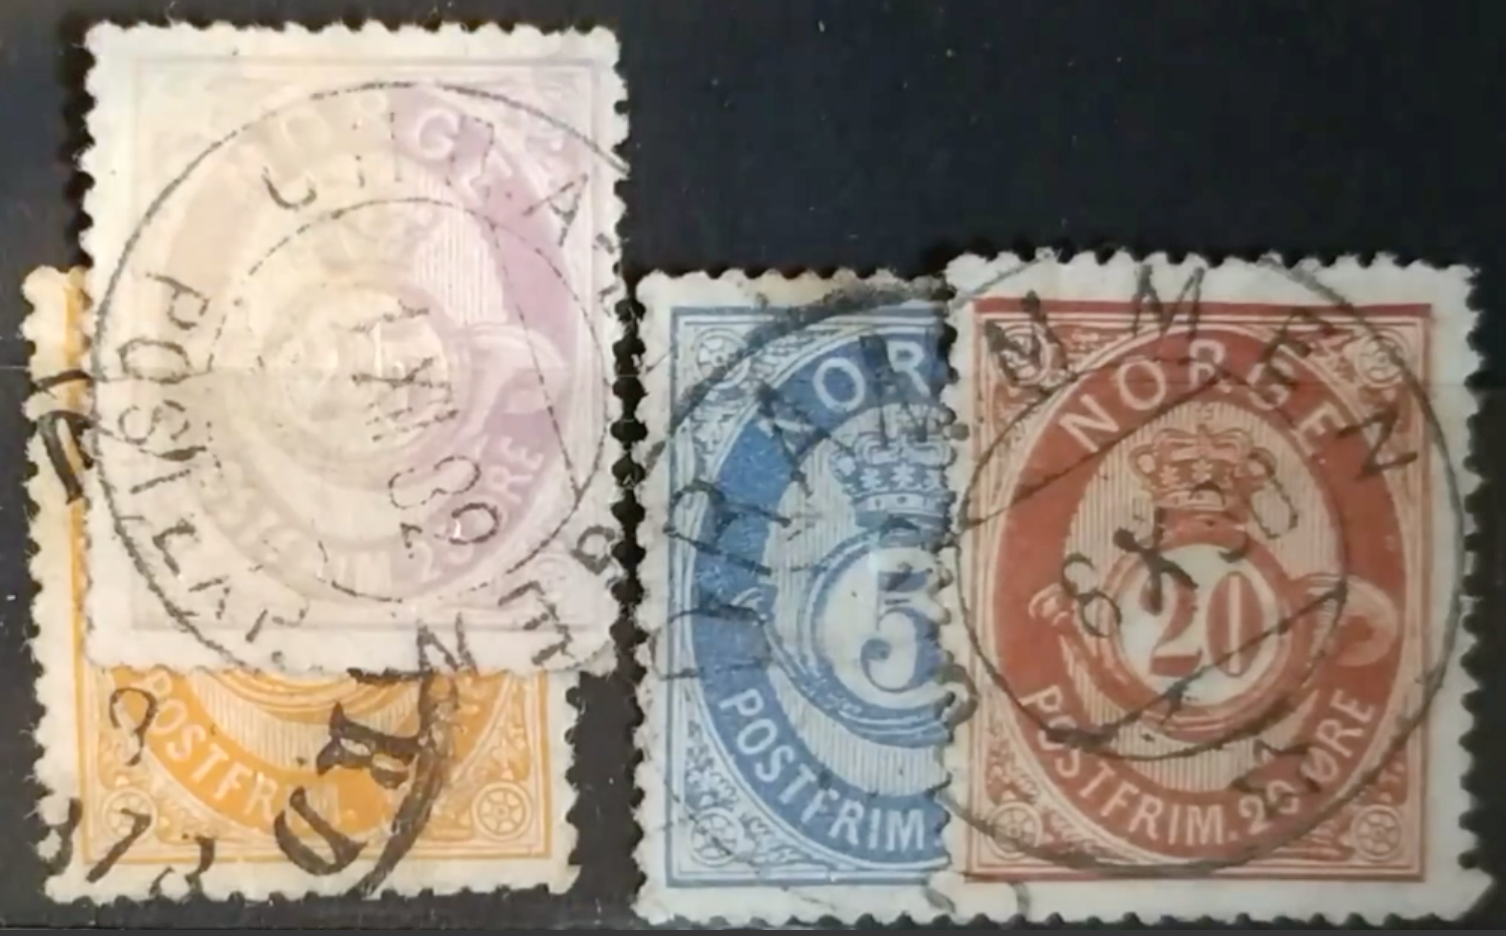 Sunlight, the curse of classical stamps